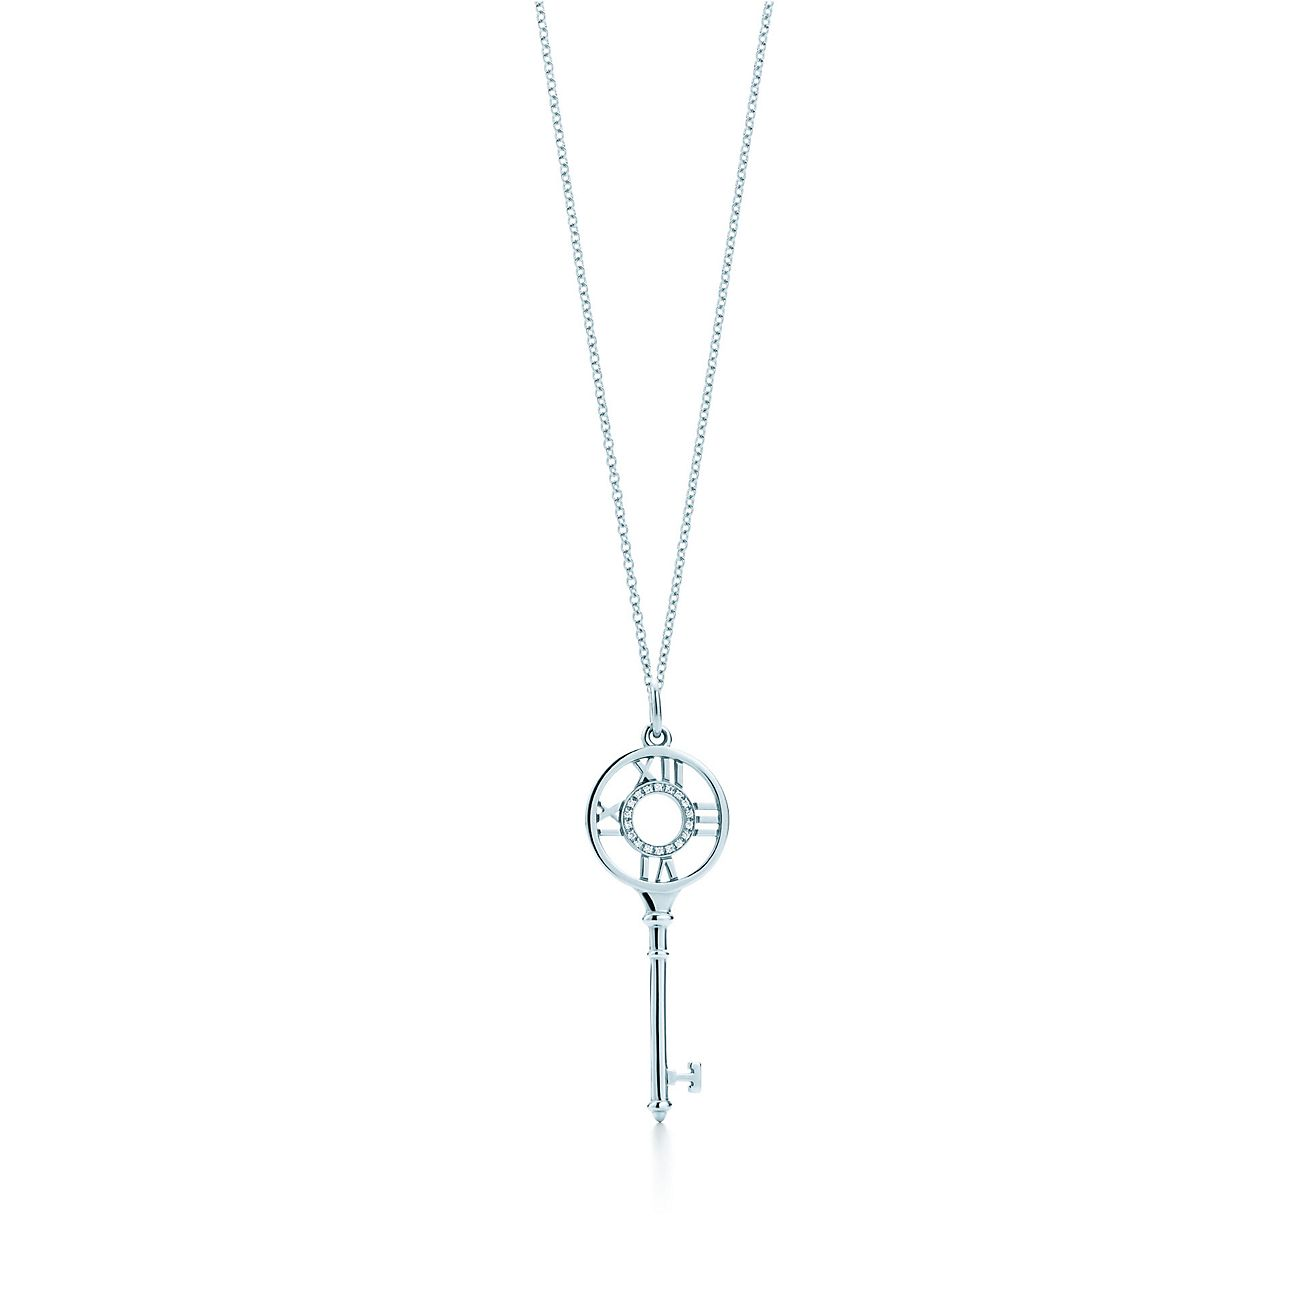 Tiffany keys atlas key pendant in 18k white gold with diamonds tiffany keysatlas key pendant aloadofball Gallery